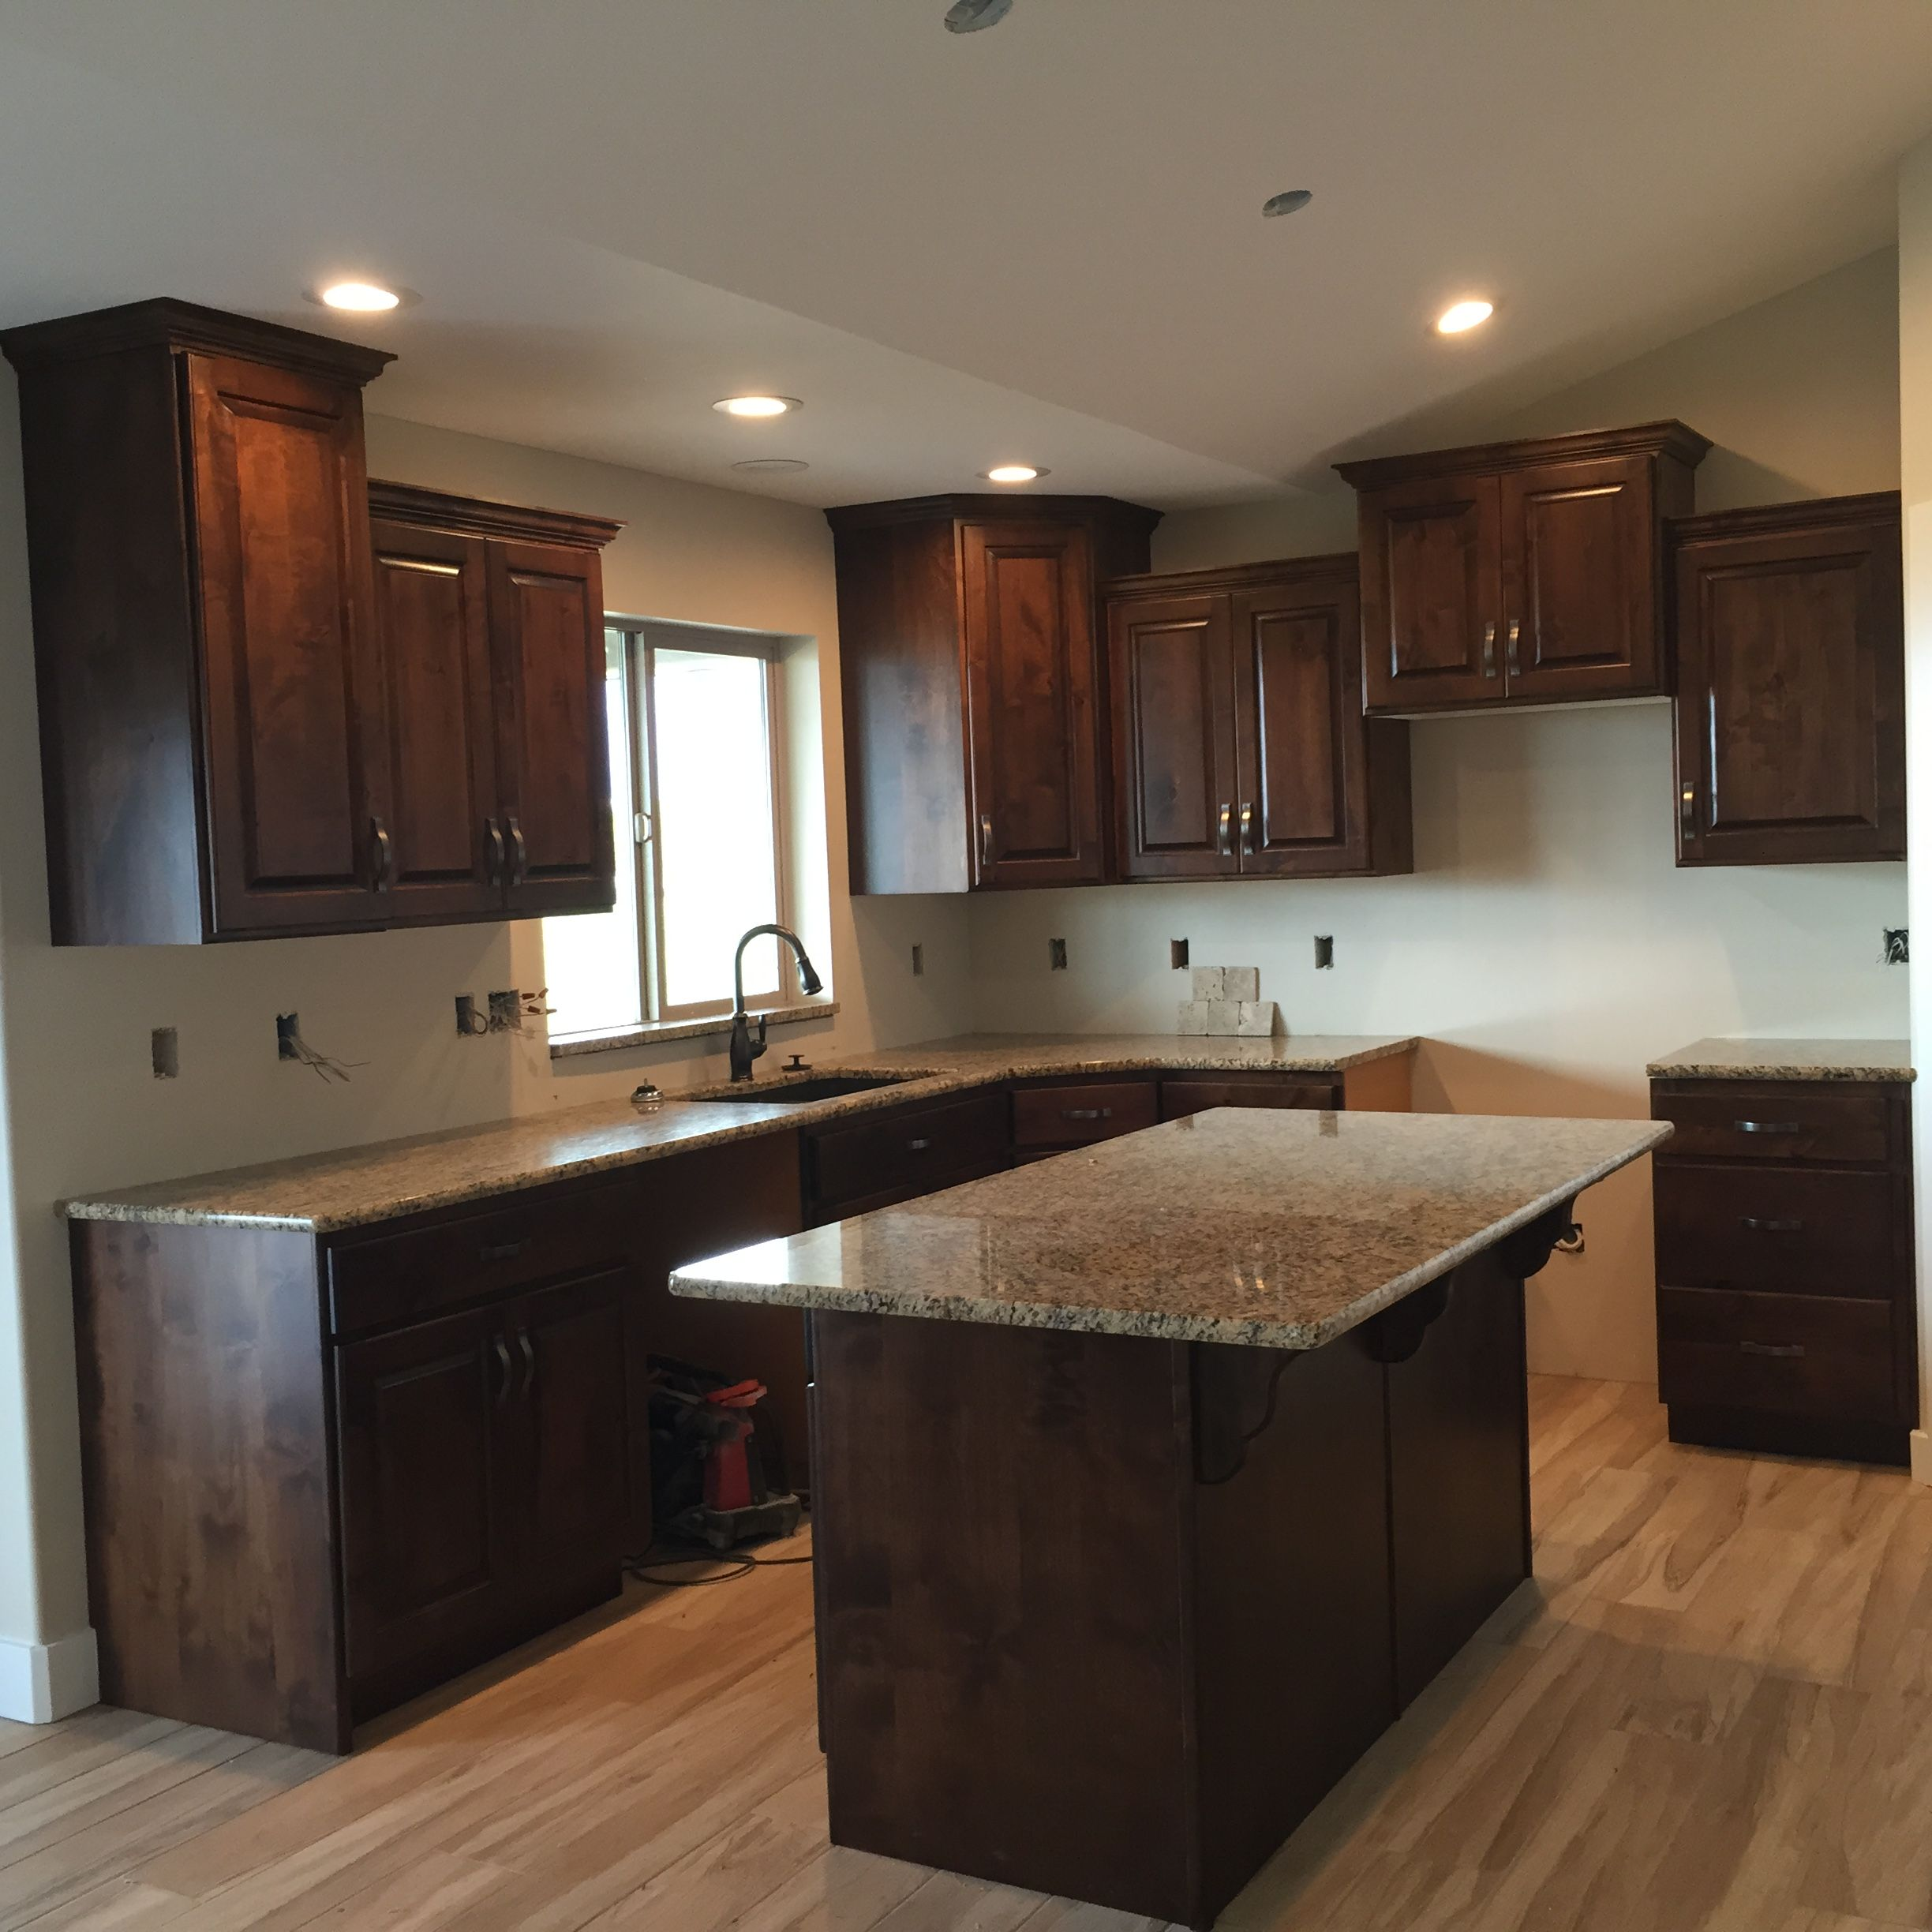 Kitchen Trends Knotty Alder Kitchen Cabinets: Stained Knotty Alder In 2019